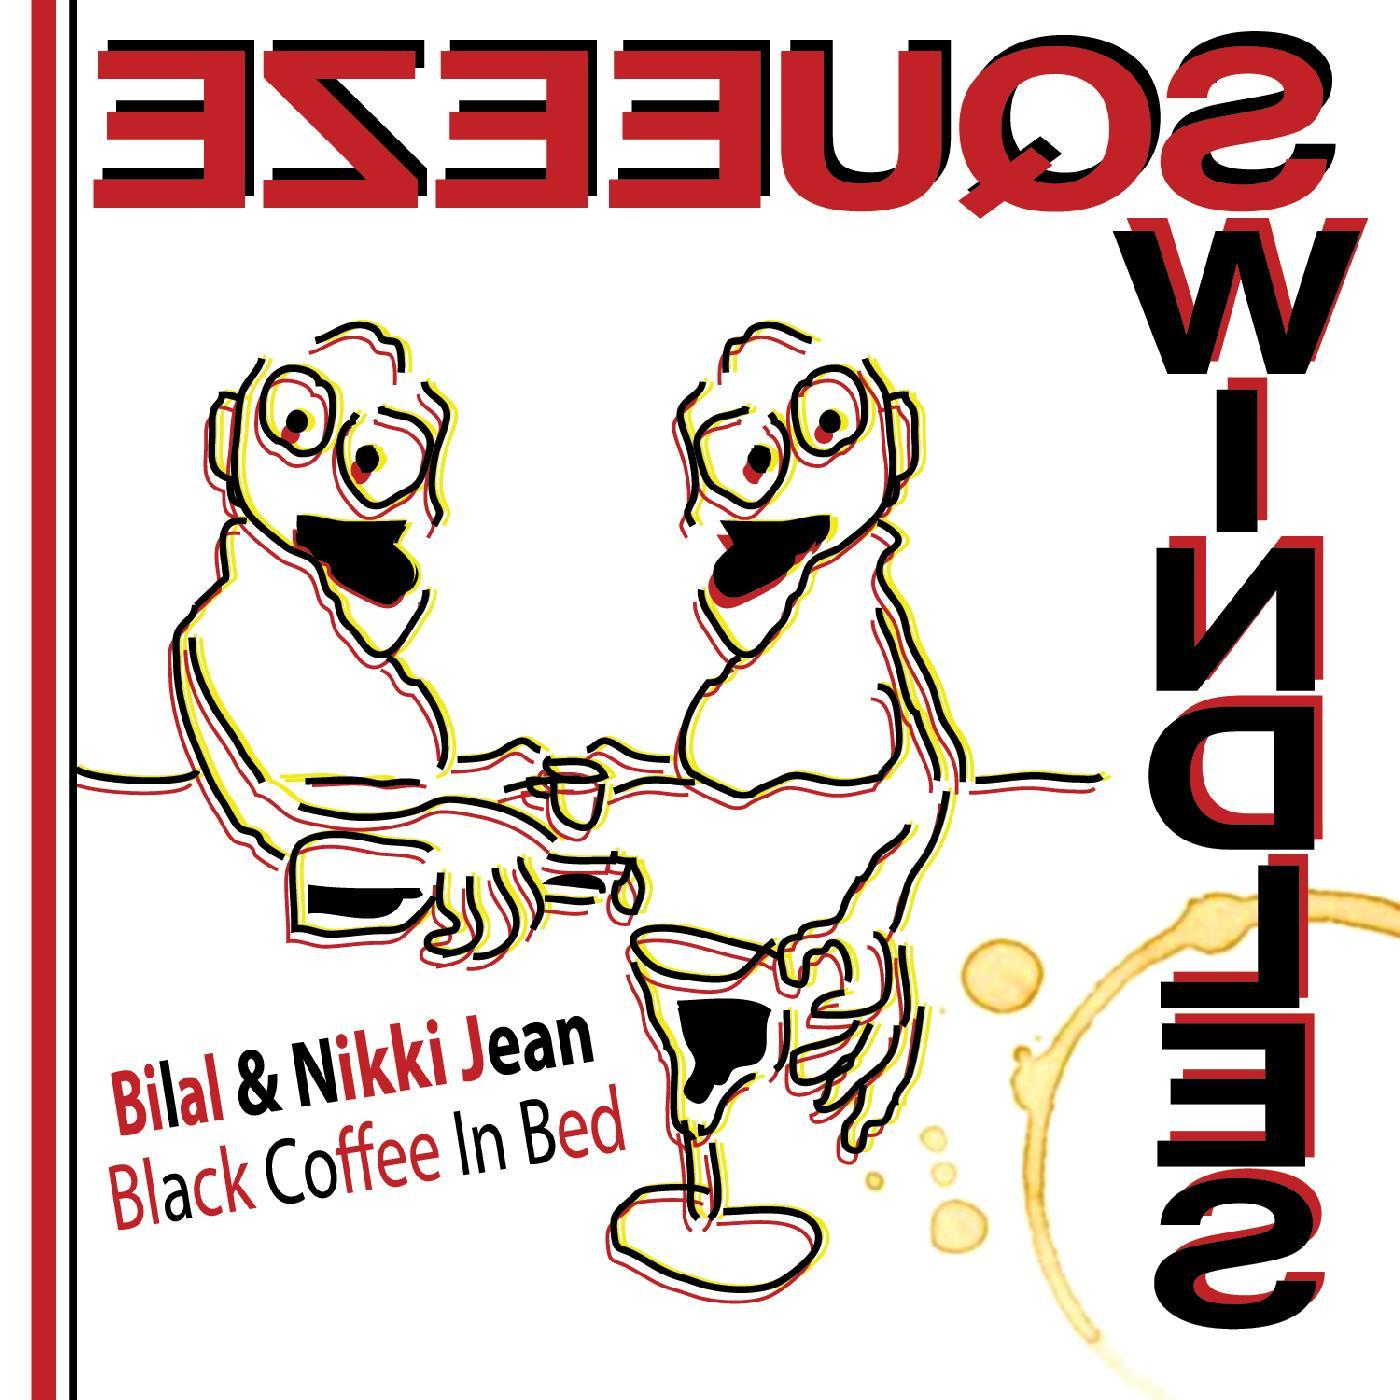 Bilal & Nikki Jean - Black Coffee in Bed [RSD BF 2020]